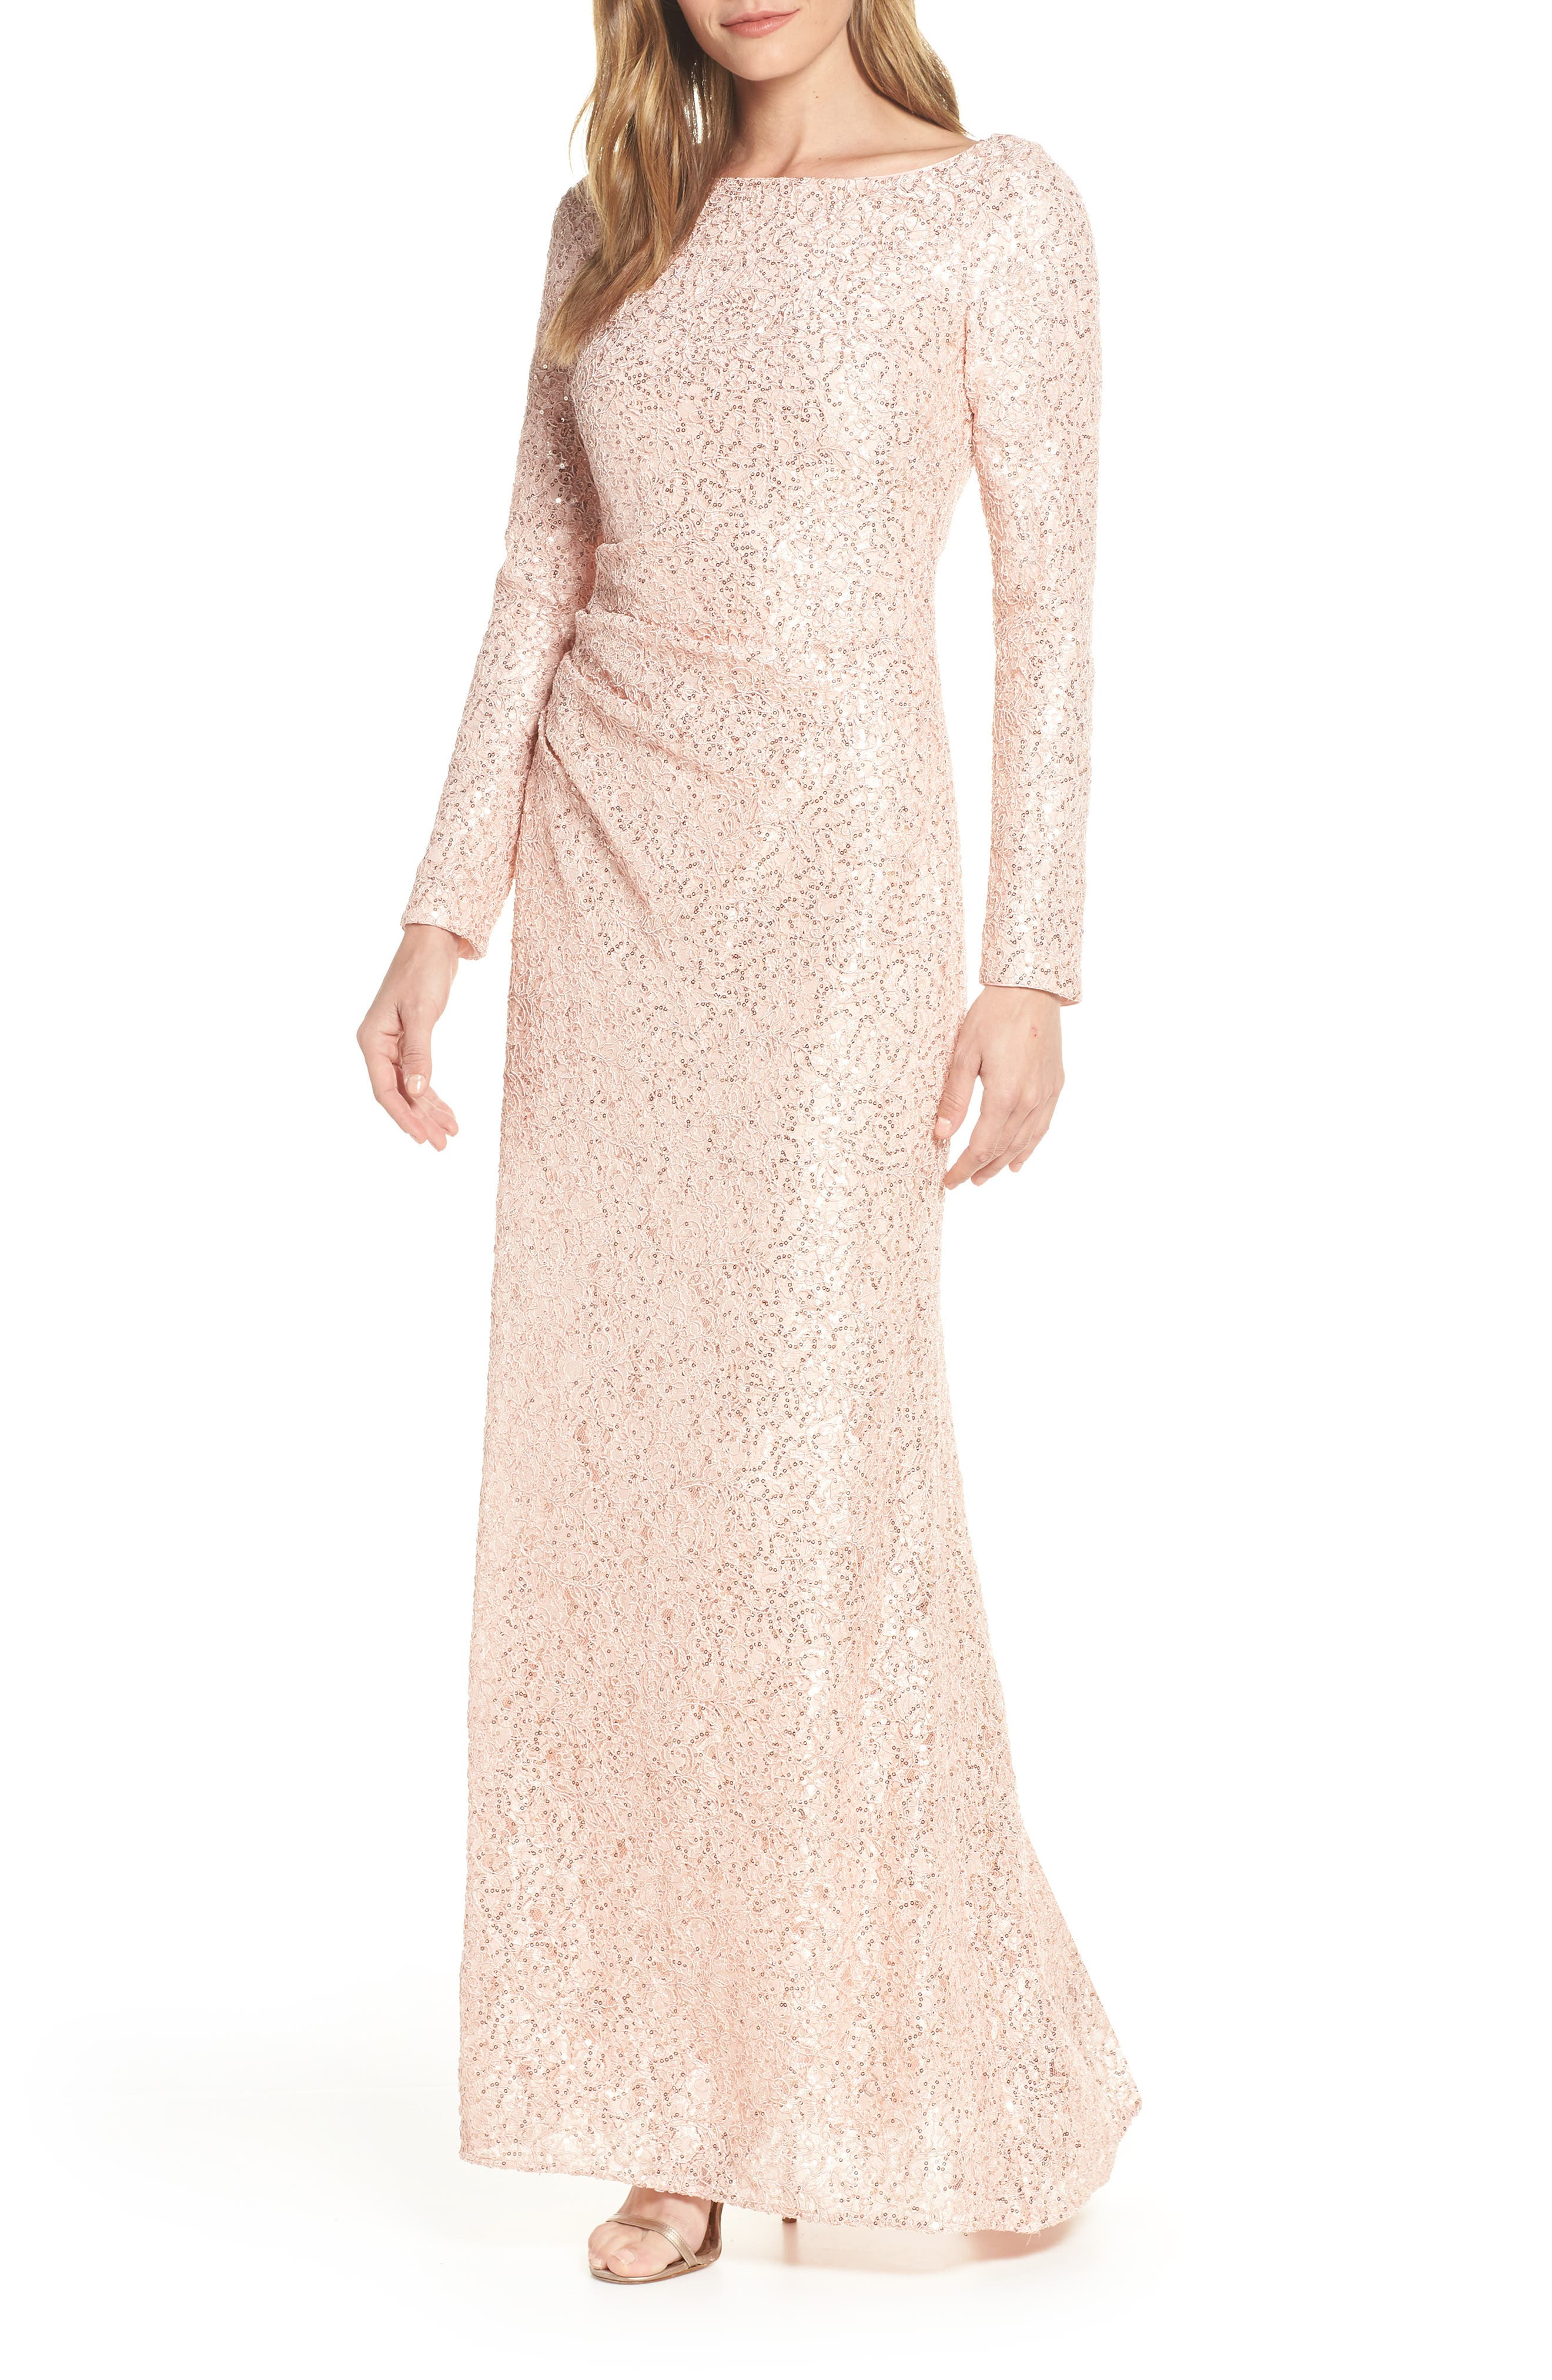 1930s Dresses | 30s Art Deco Dress Womens Vince Camuto Sequin Lace Evening Dress $308.00 AT vintagedancer.com